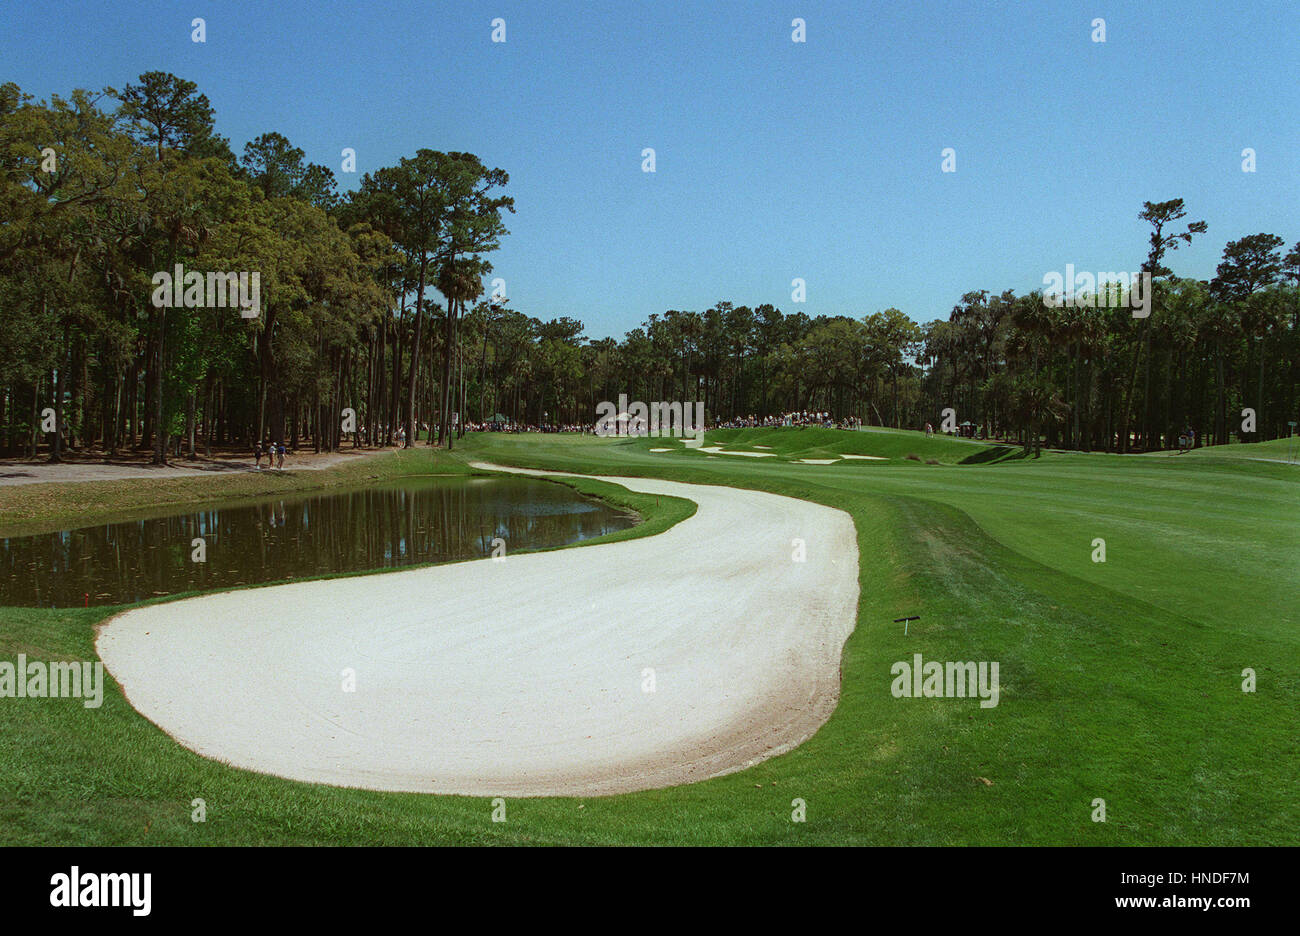 5TH FAIRWAY & GREEN SAWGRASS THE PLAYERS CHAMPIONSHIP 29 March 1995 - Stock Image